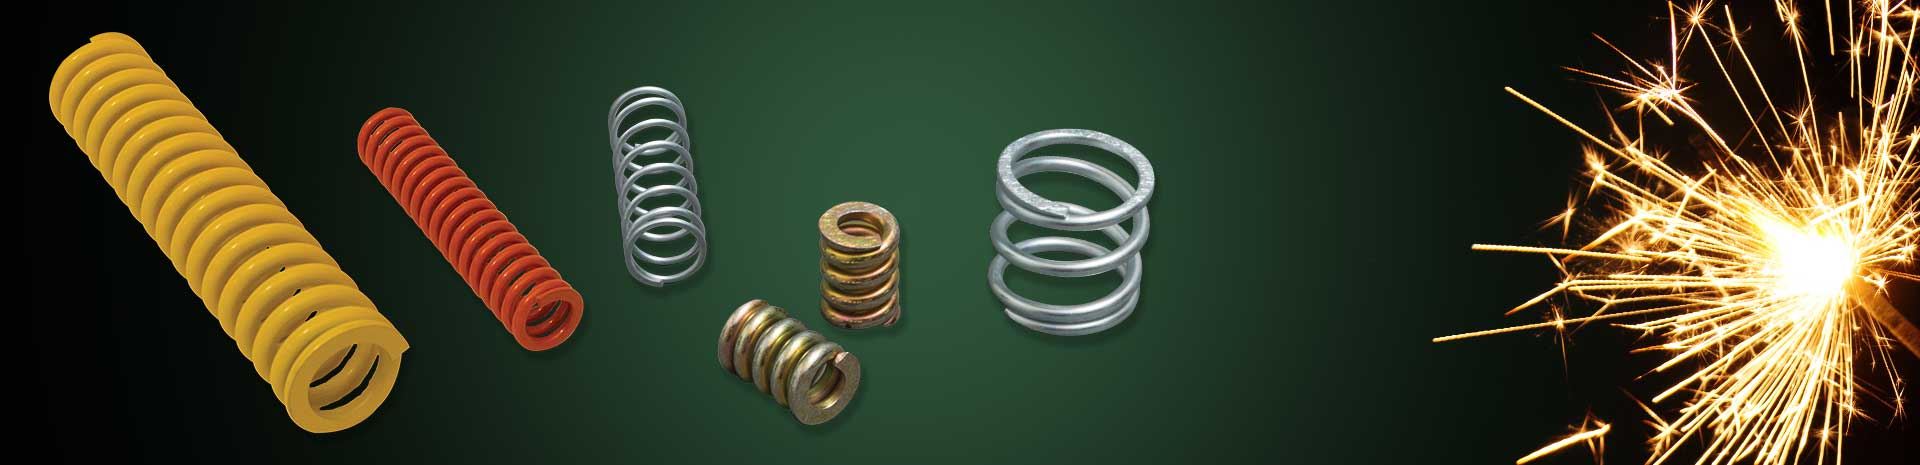 compression springs, compression spring manufacturers